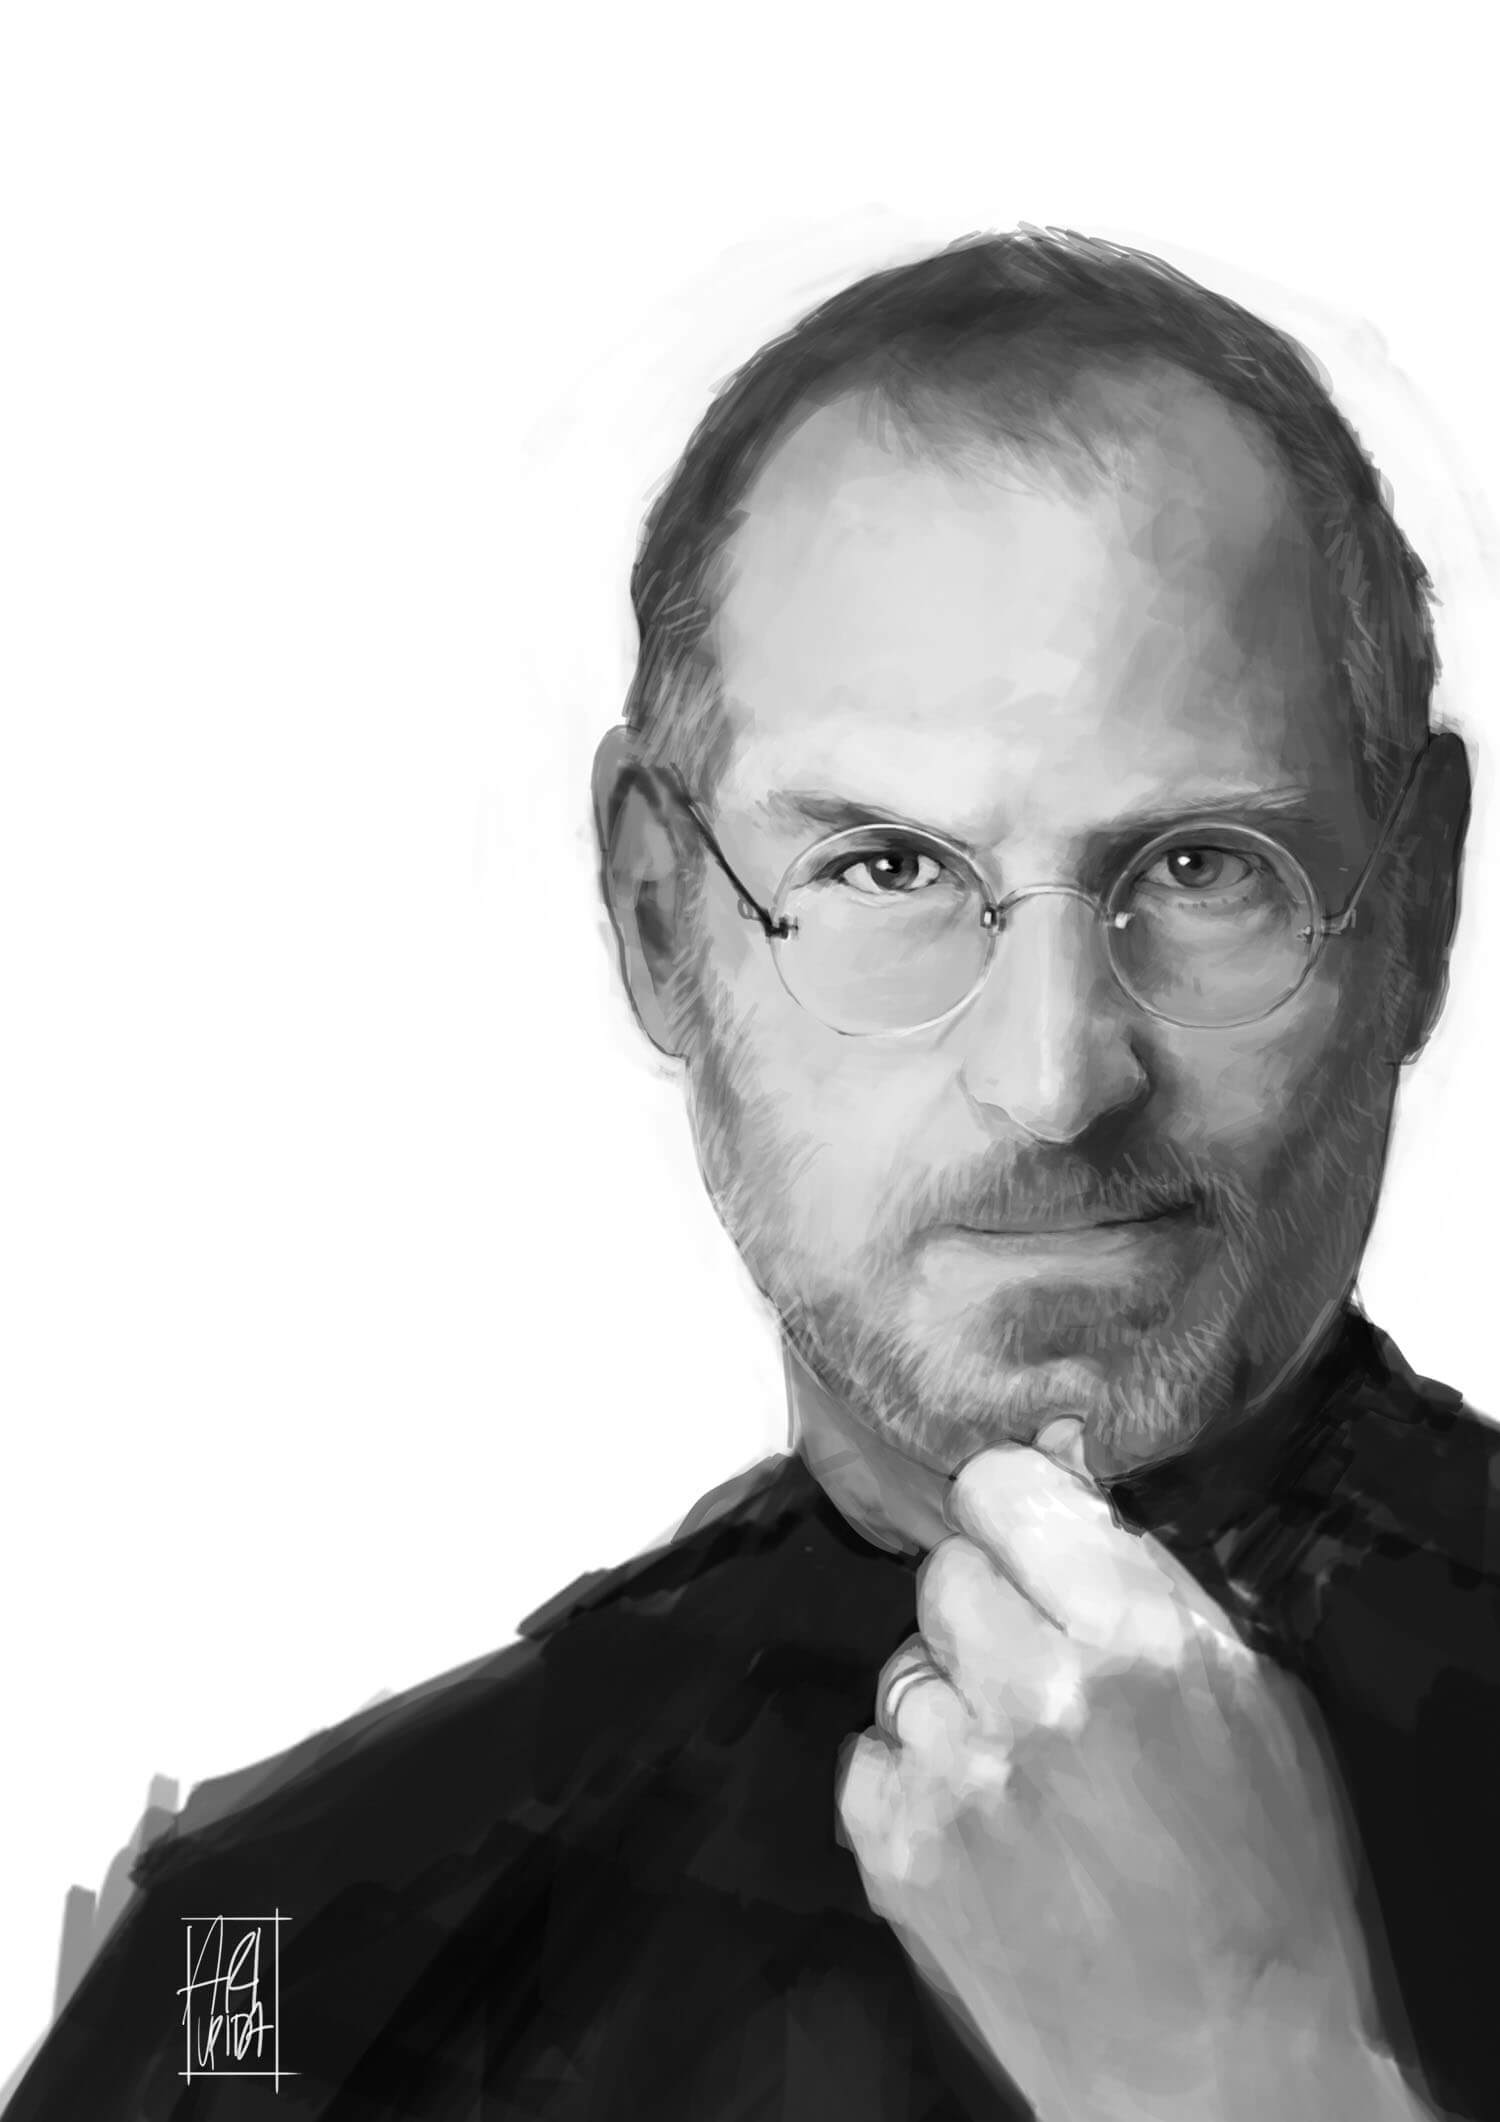 GOOD BYE STEVE JOB